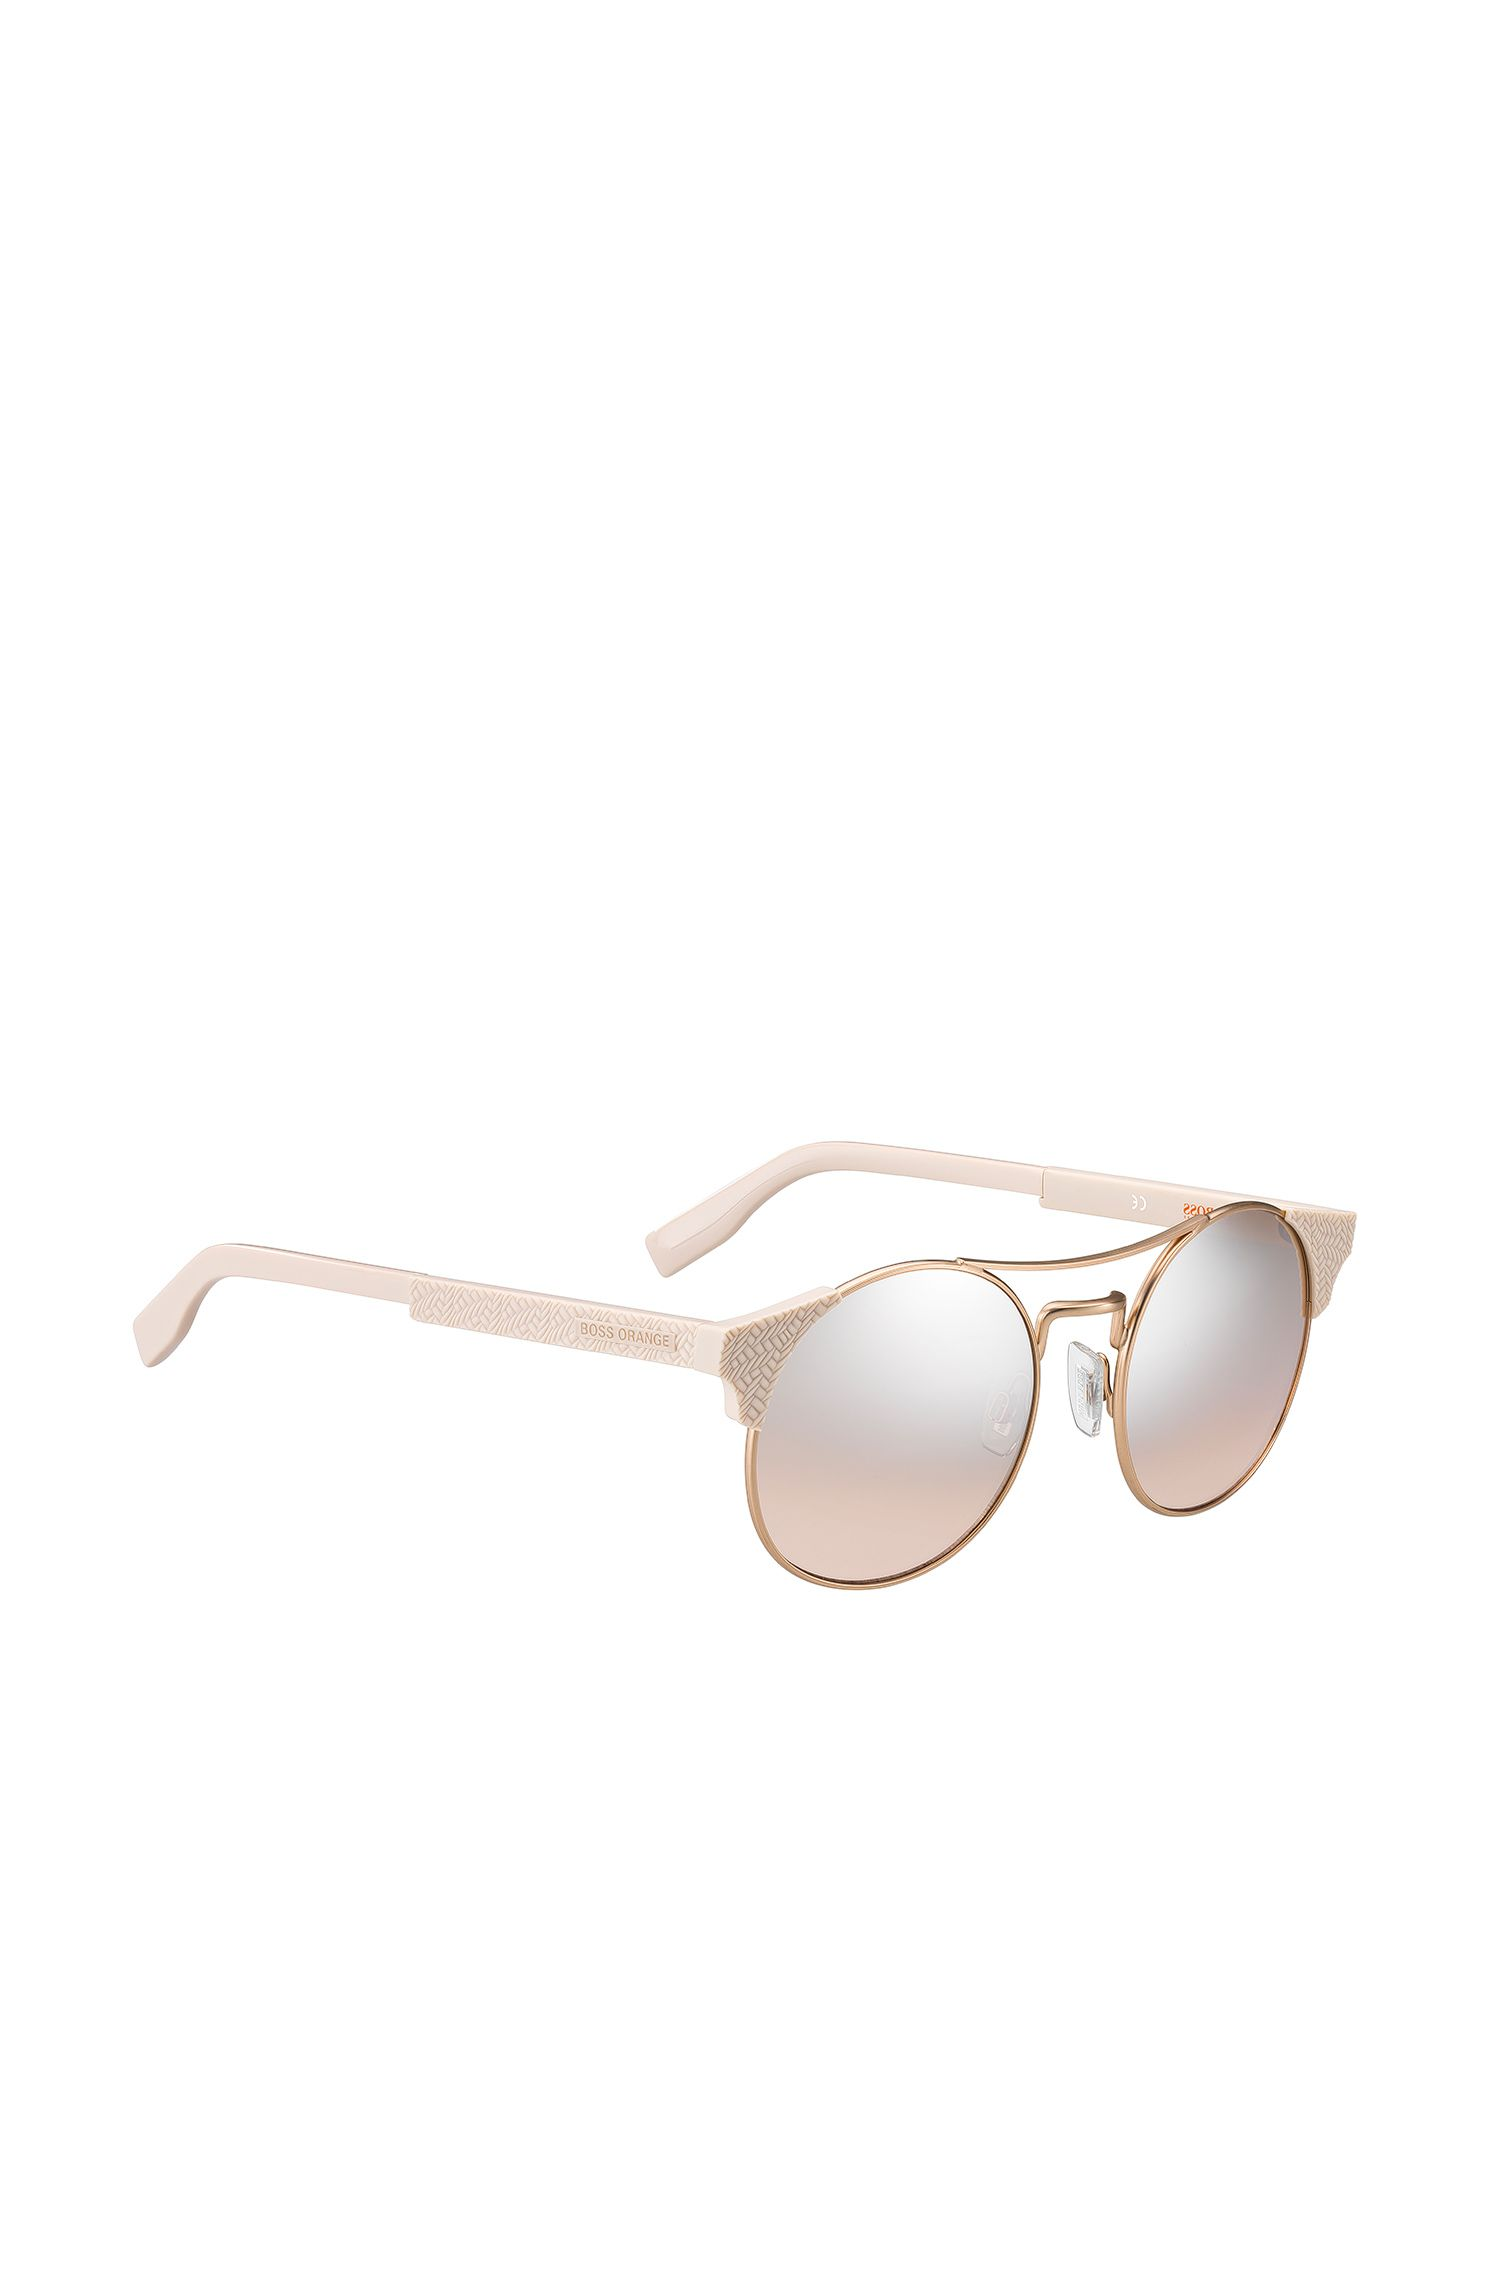 Gold-copper panto sunglasses with textured temples